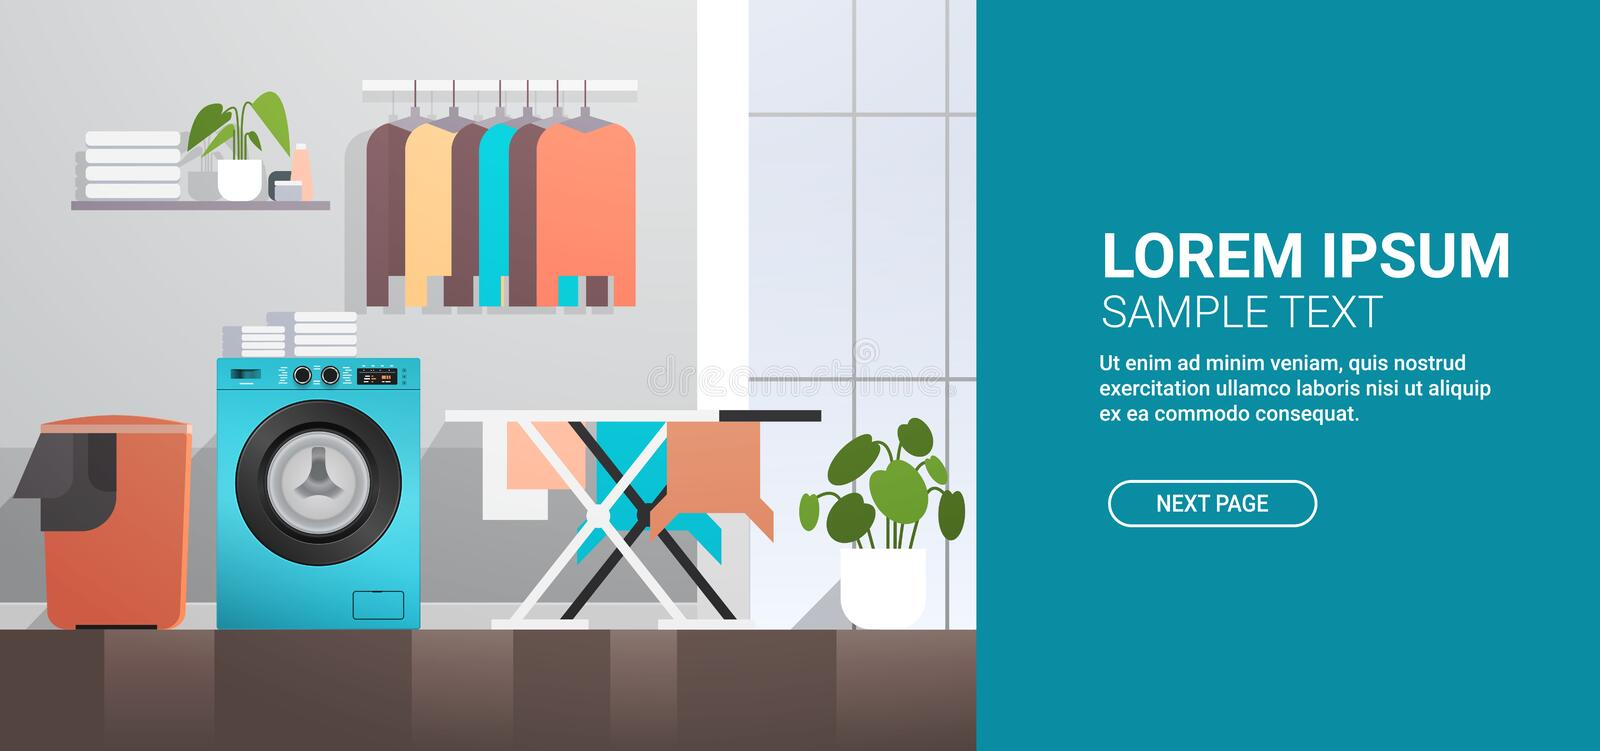 Laundry room with washing machine basket ironing board and clothes rack modern bathroom interior. Horizontal copy space vector illustration royalty free illustration